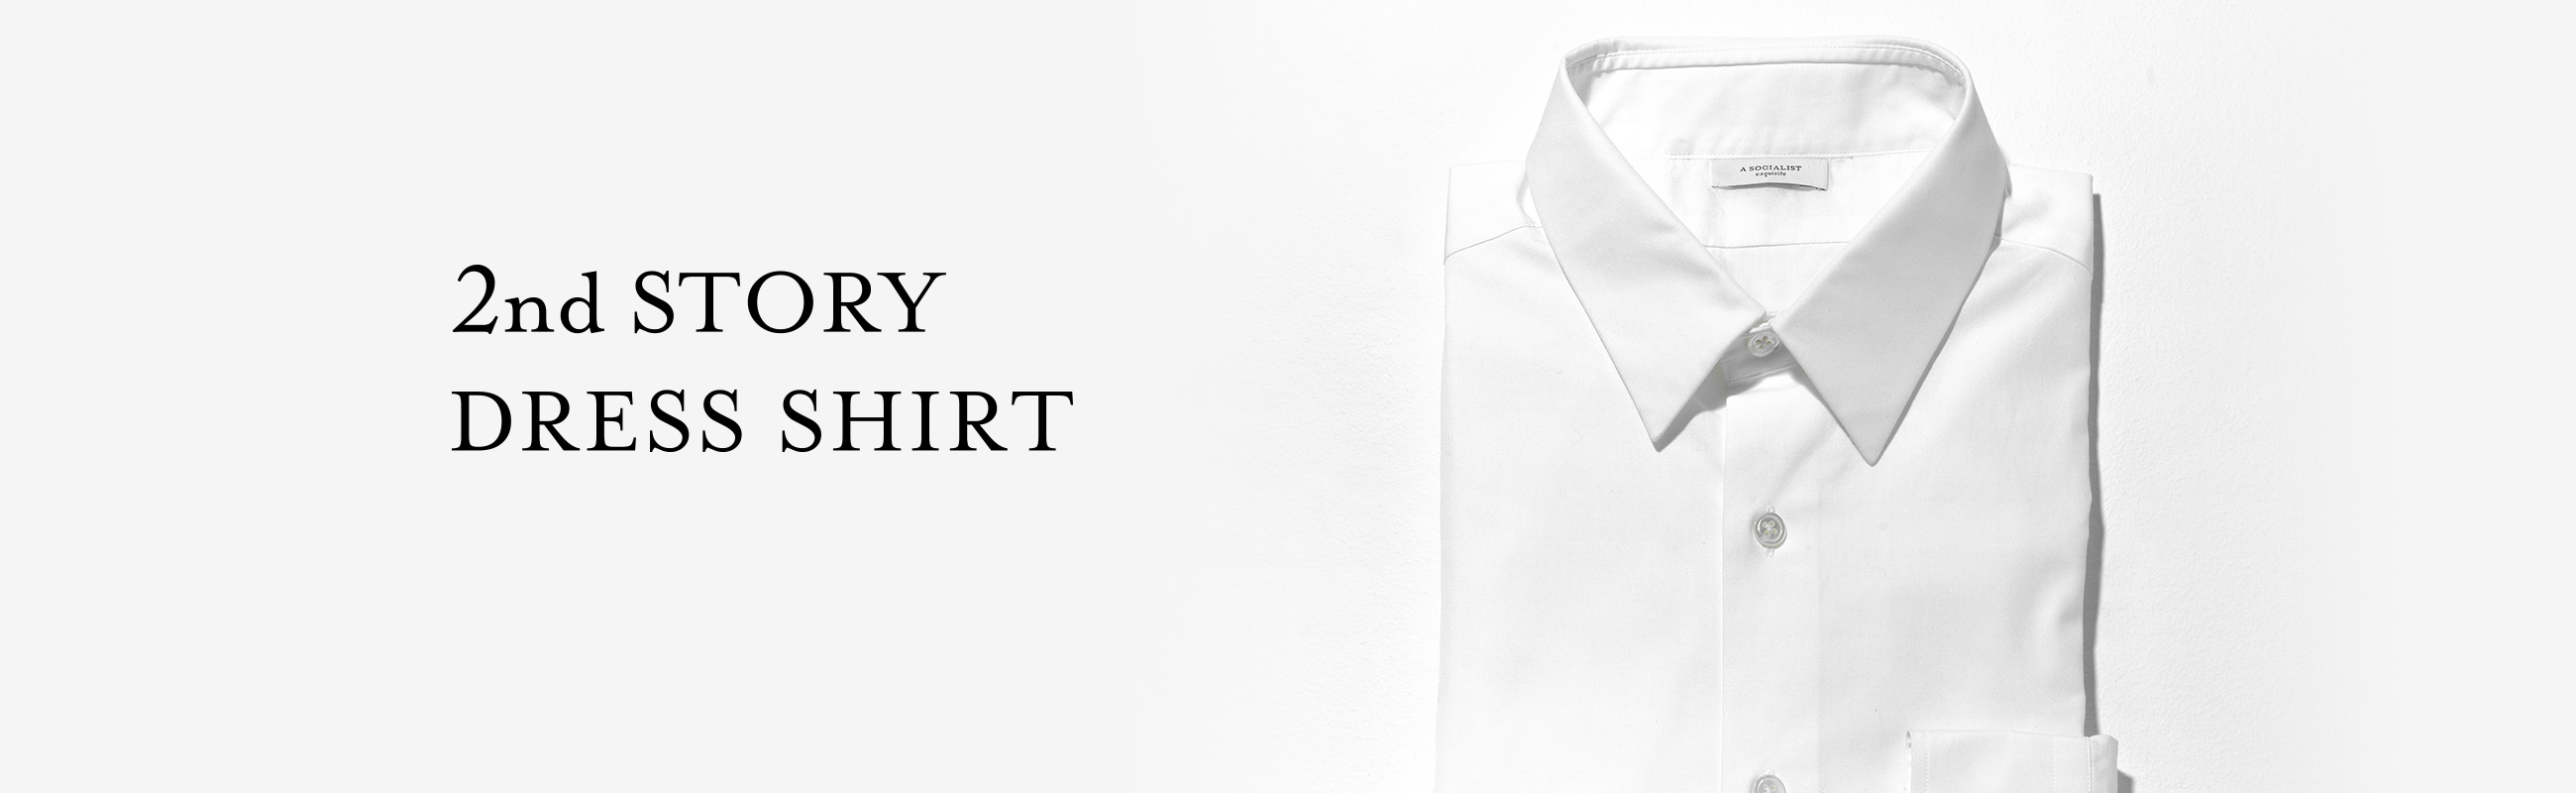 2nd STORY DRESS SHIRT